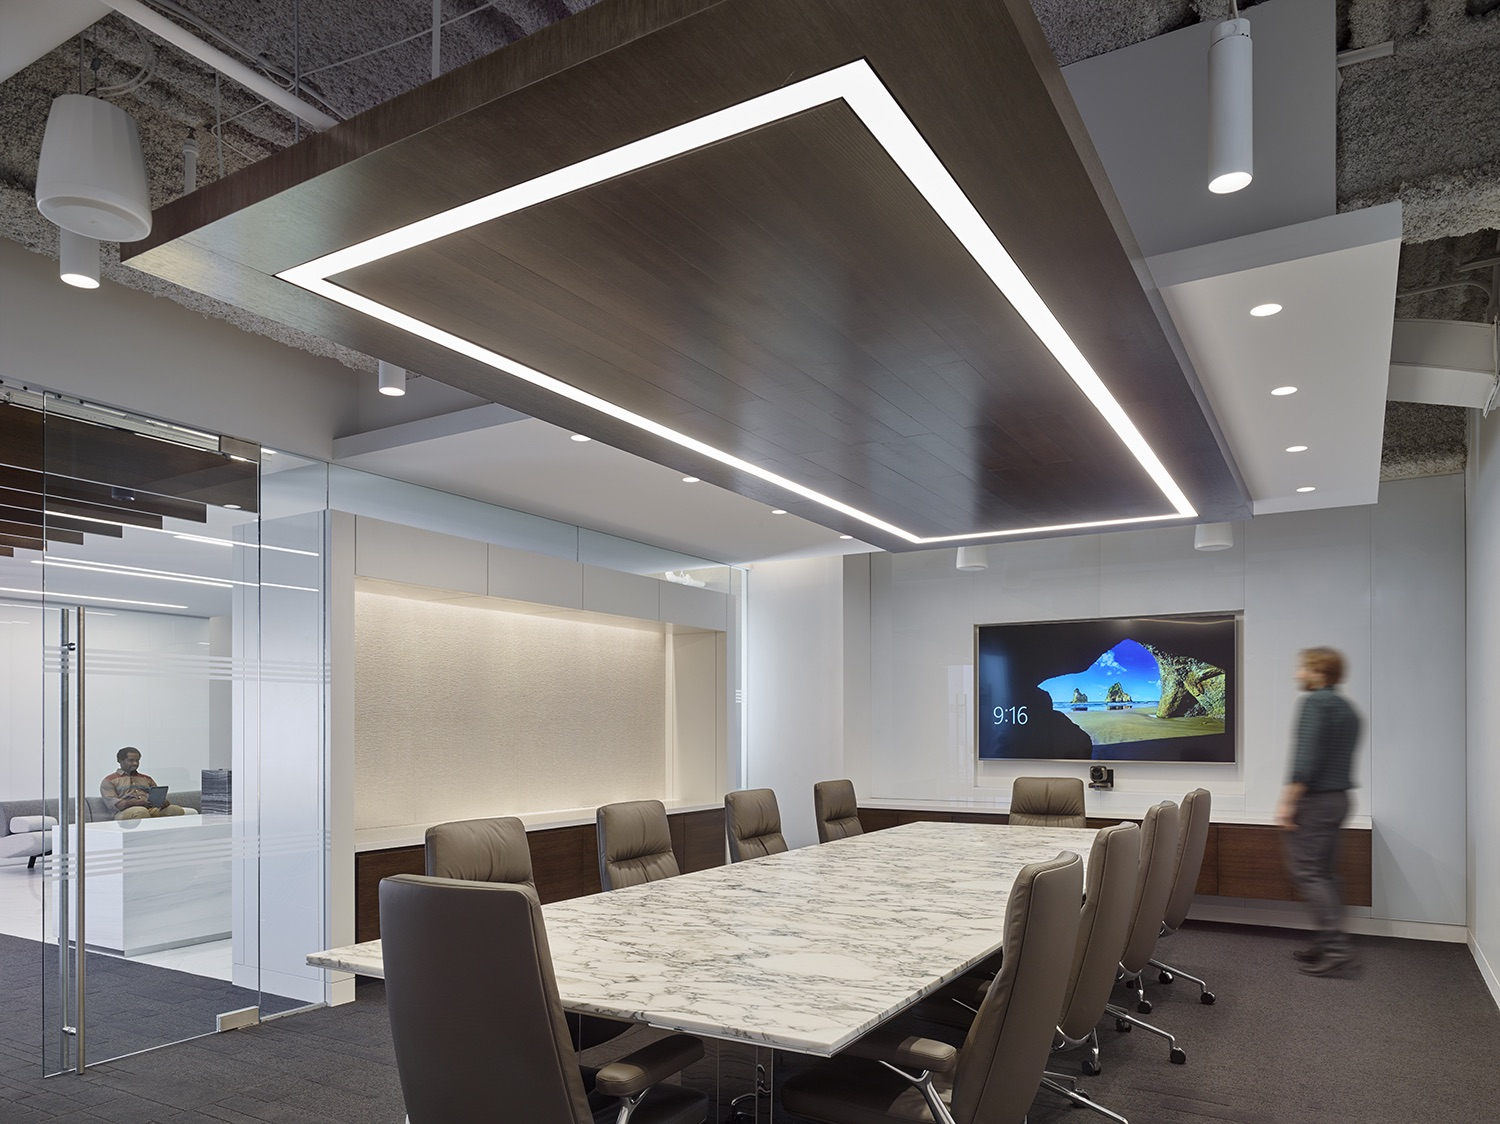 trading-screen-nyc-office-1